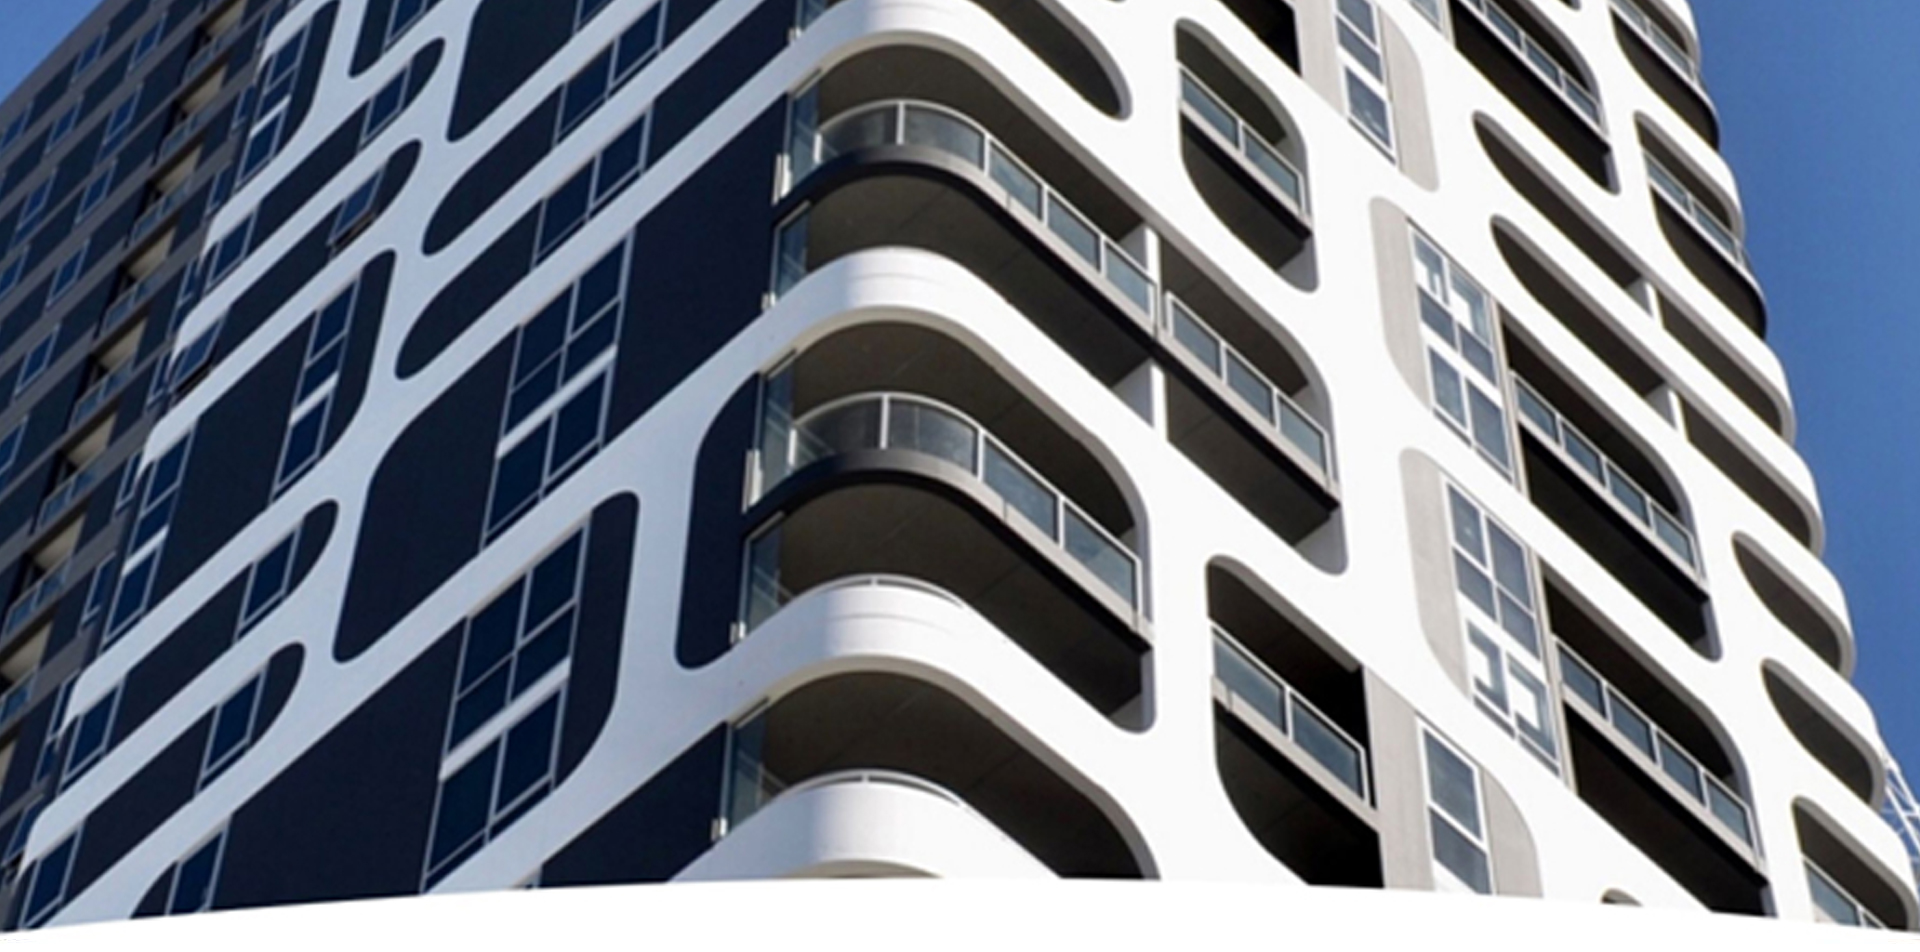 5 Fundamental Features to Consider When Choosing Commercial Balustrades